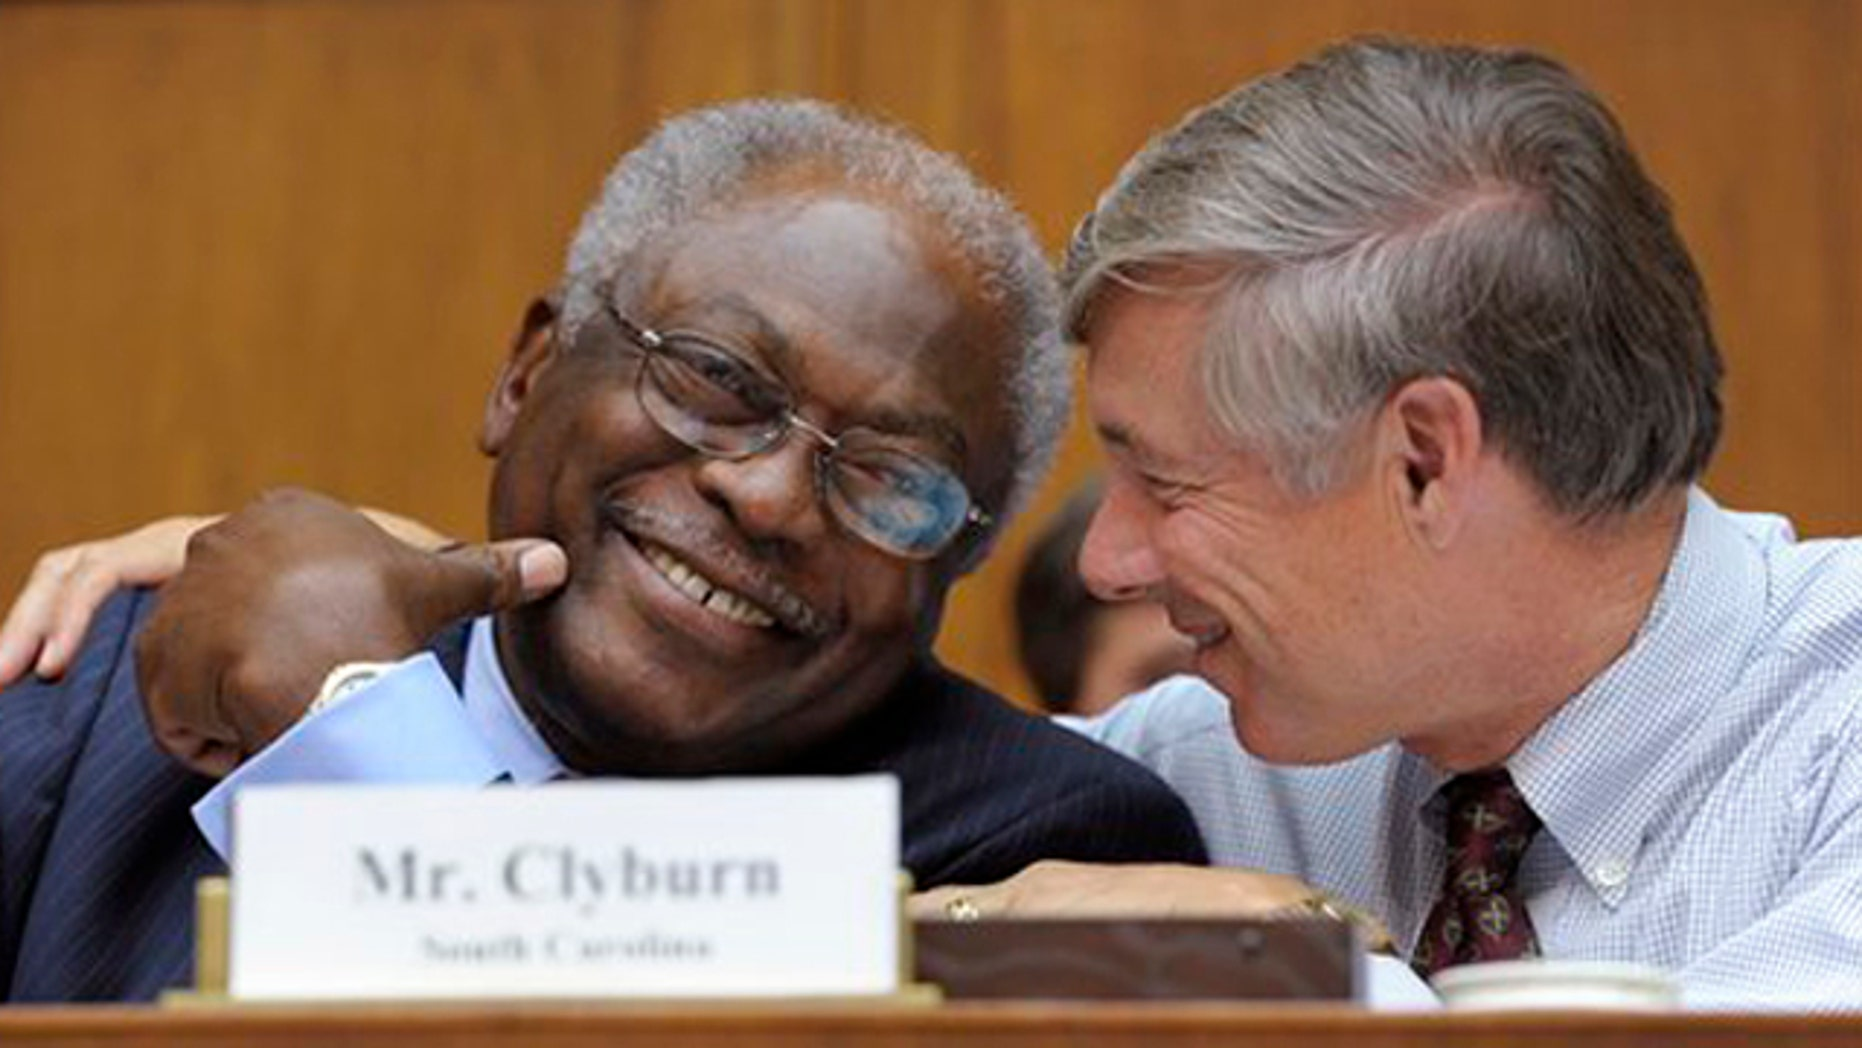 Rep. James Clyburn, left, shares a laugh with Rep. Fred Upton, right, before the start of the Joint Select Committee on Deficit Reduction meeting in Washington Sept. 8.